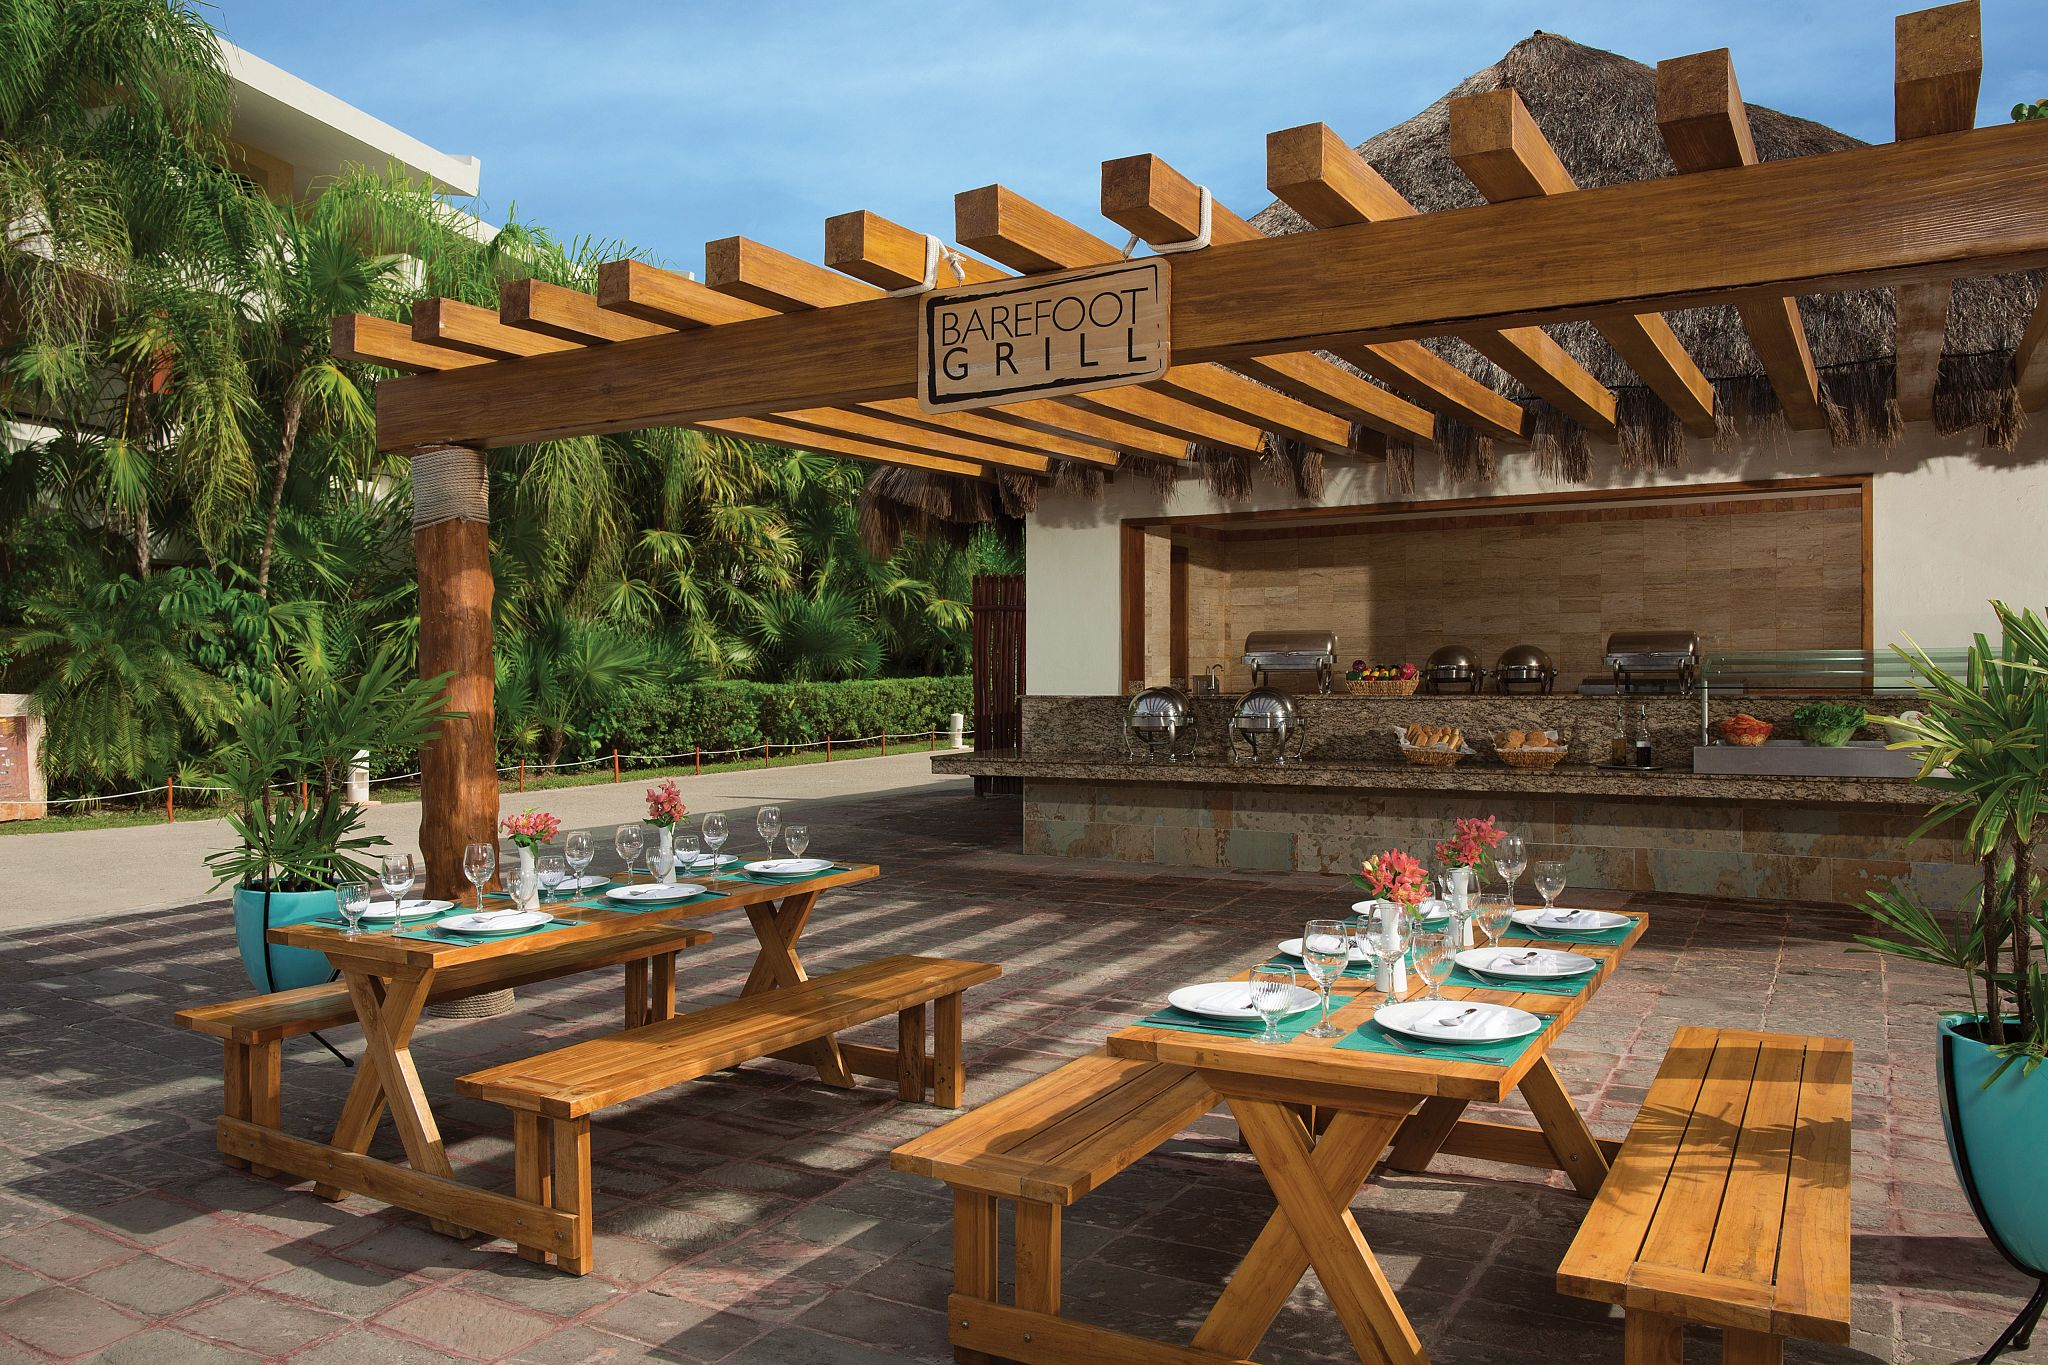 Outdoor grill restaurant with dining set up